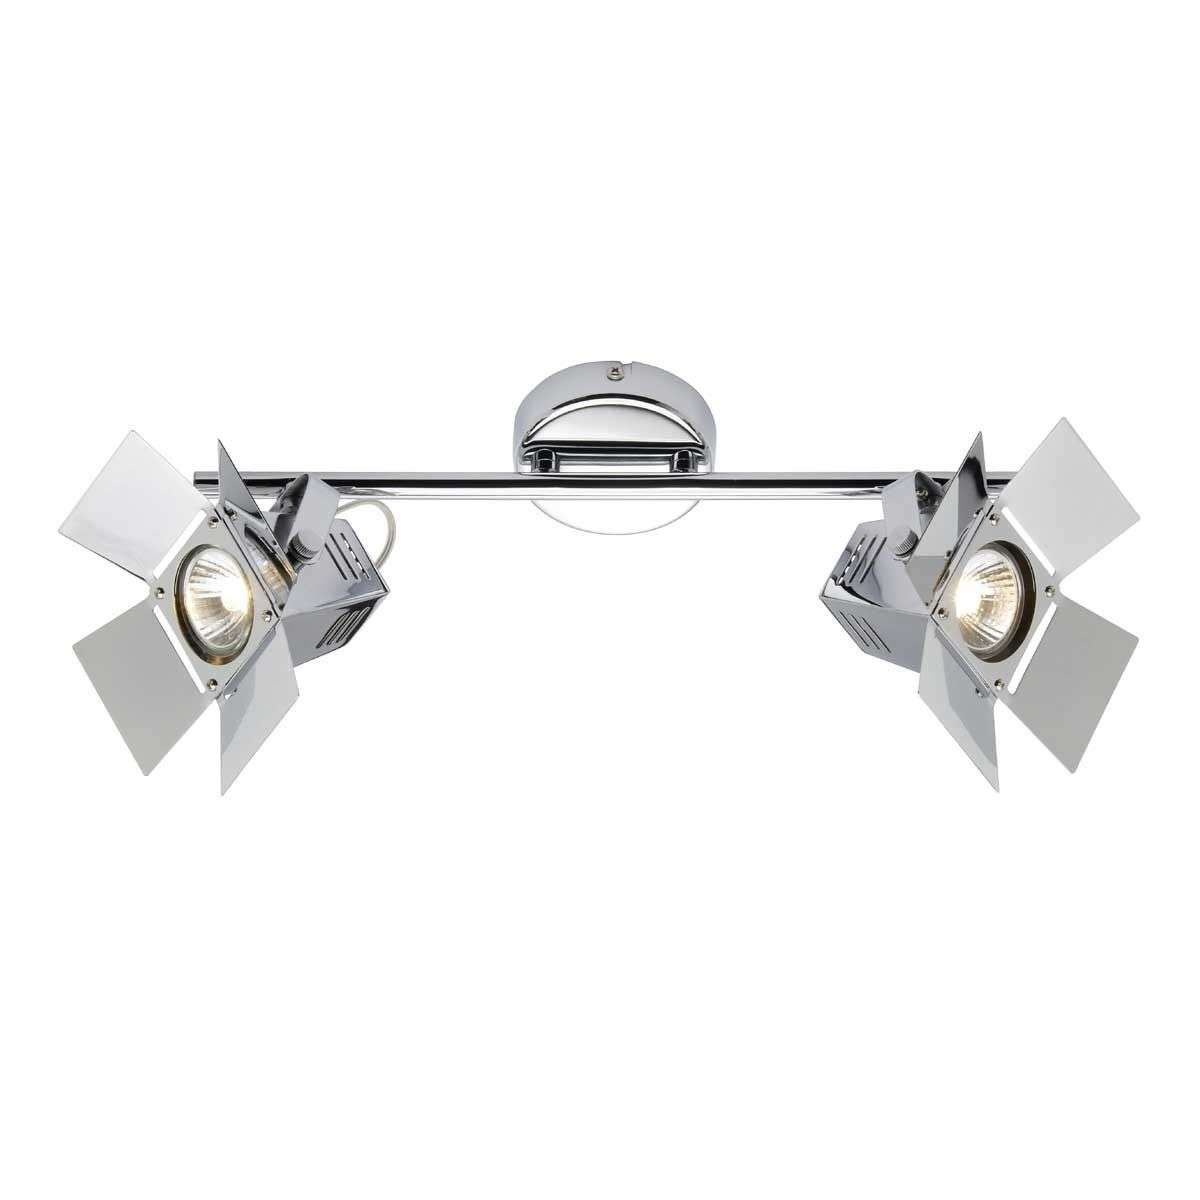 Two bulb spotlight ceiling light movie chrome lights two bulb spotlight ceiling light movie chrome 1507182 31 mozeypictures Gallery